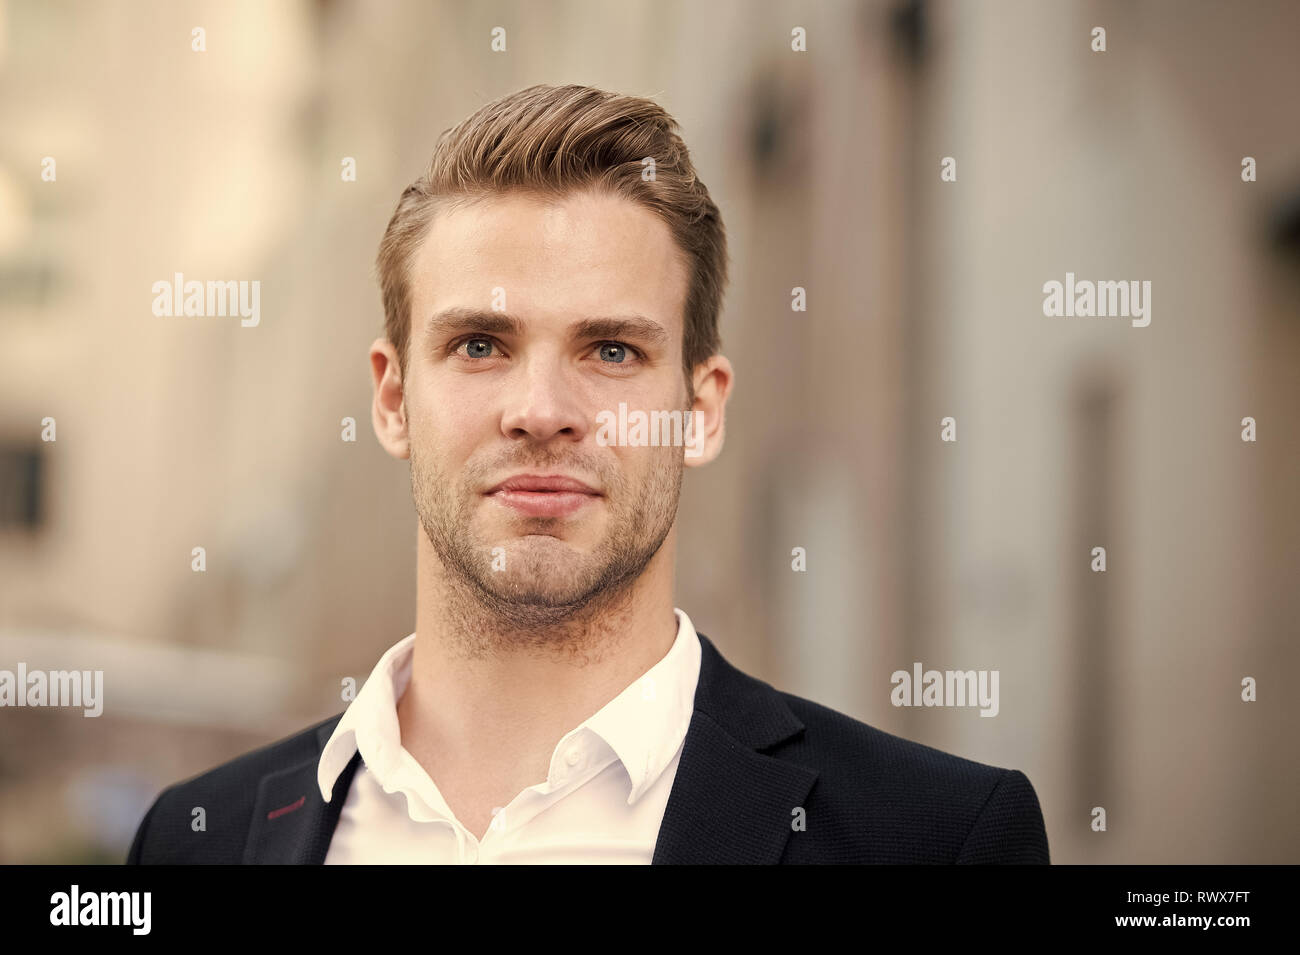 Businessman stand on urban background. Confident man in formal wear outdoor. This is my city. Male grooming for ceo at barbershop. Thinking about new possibilities. Confidence and charisma. - Stock Image